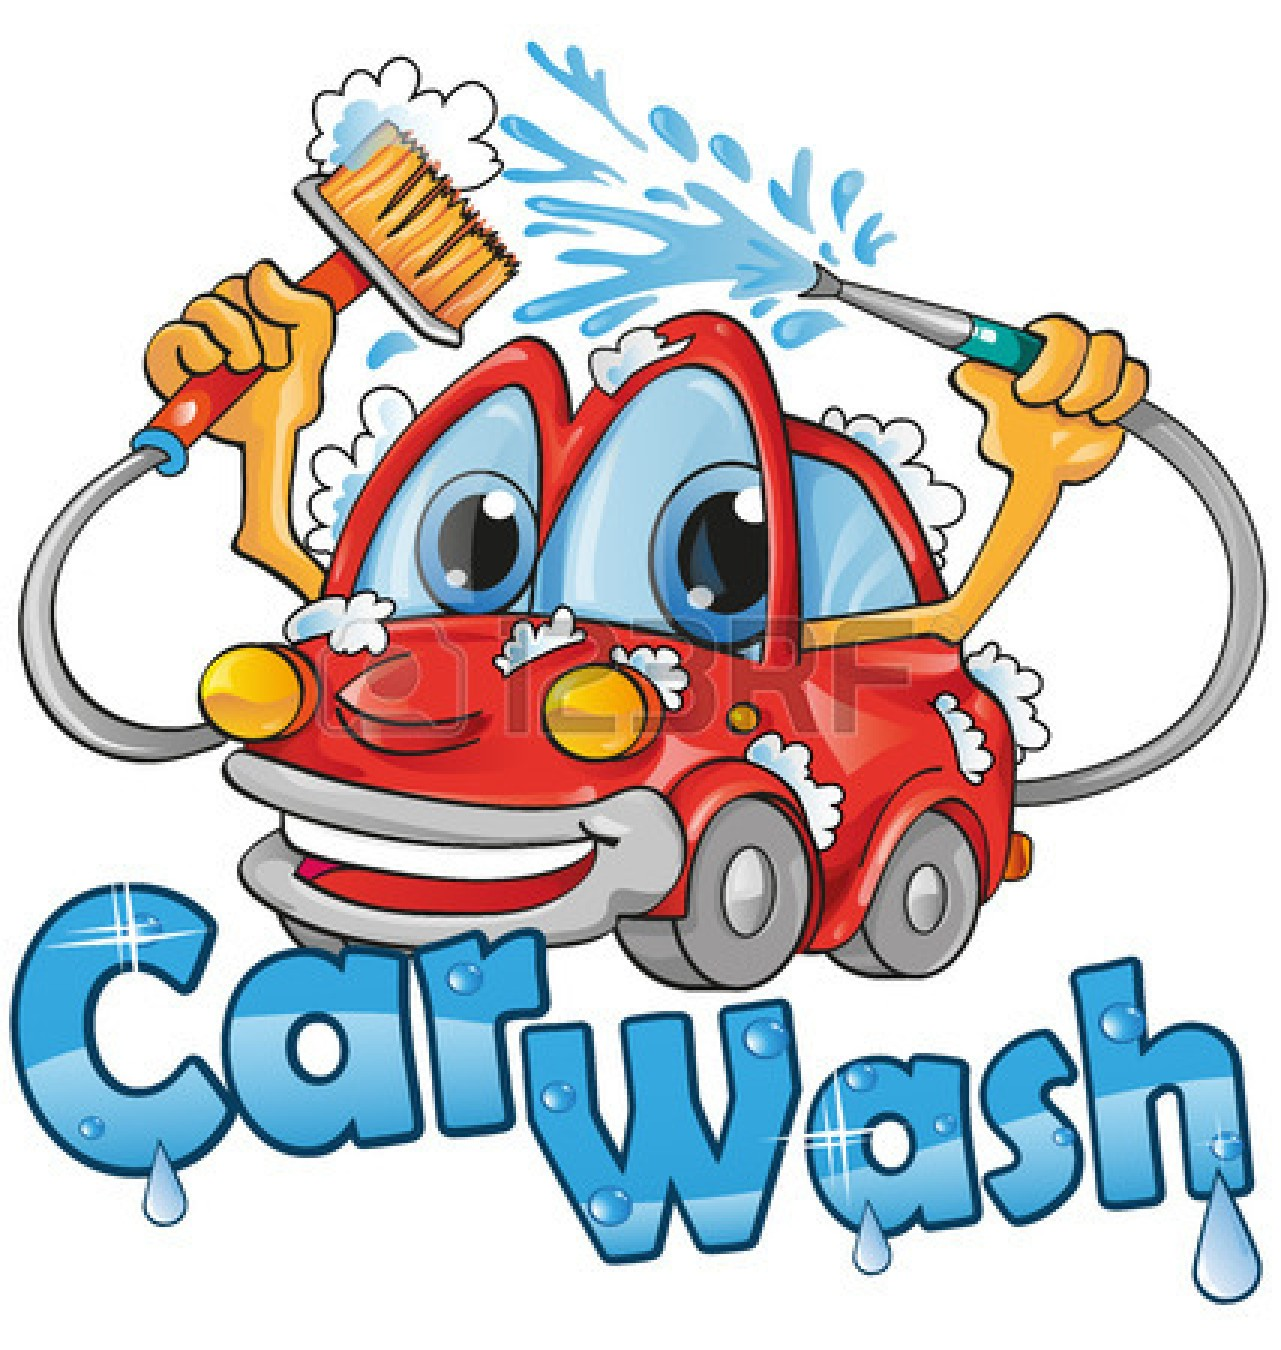 13 Downloadable Car Wash Vector Art Images